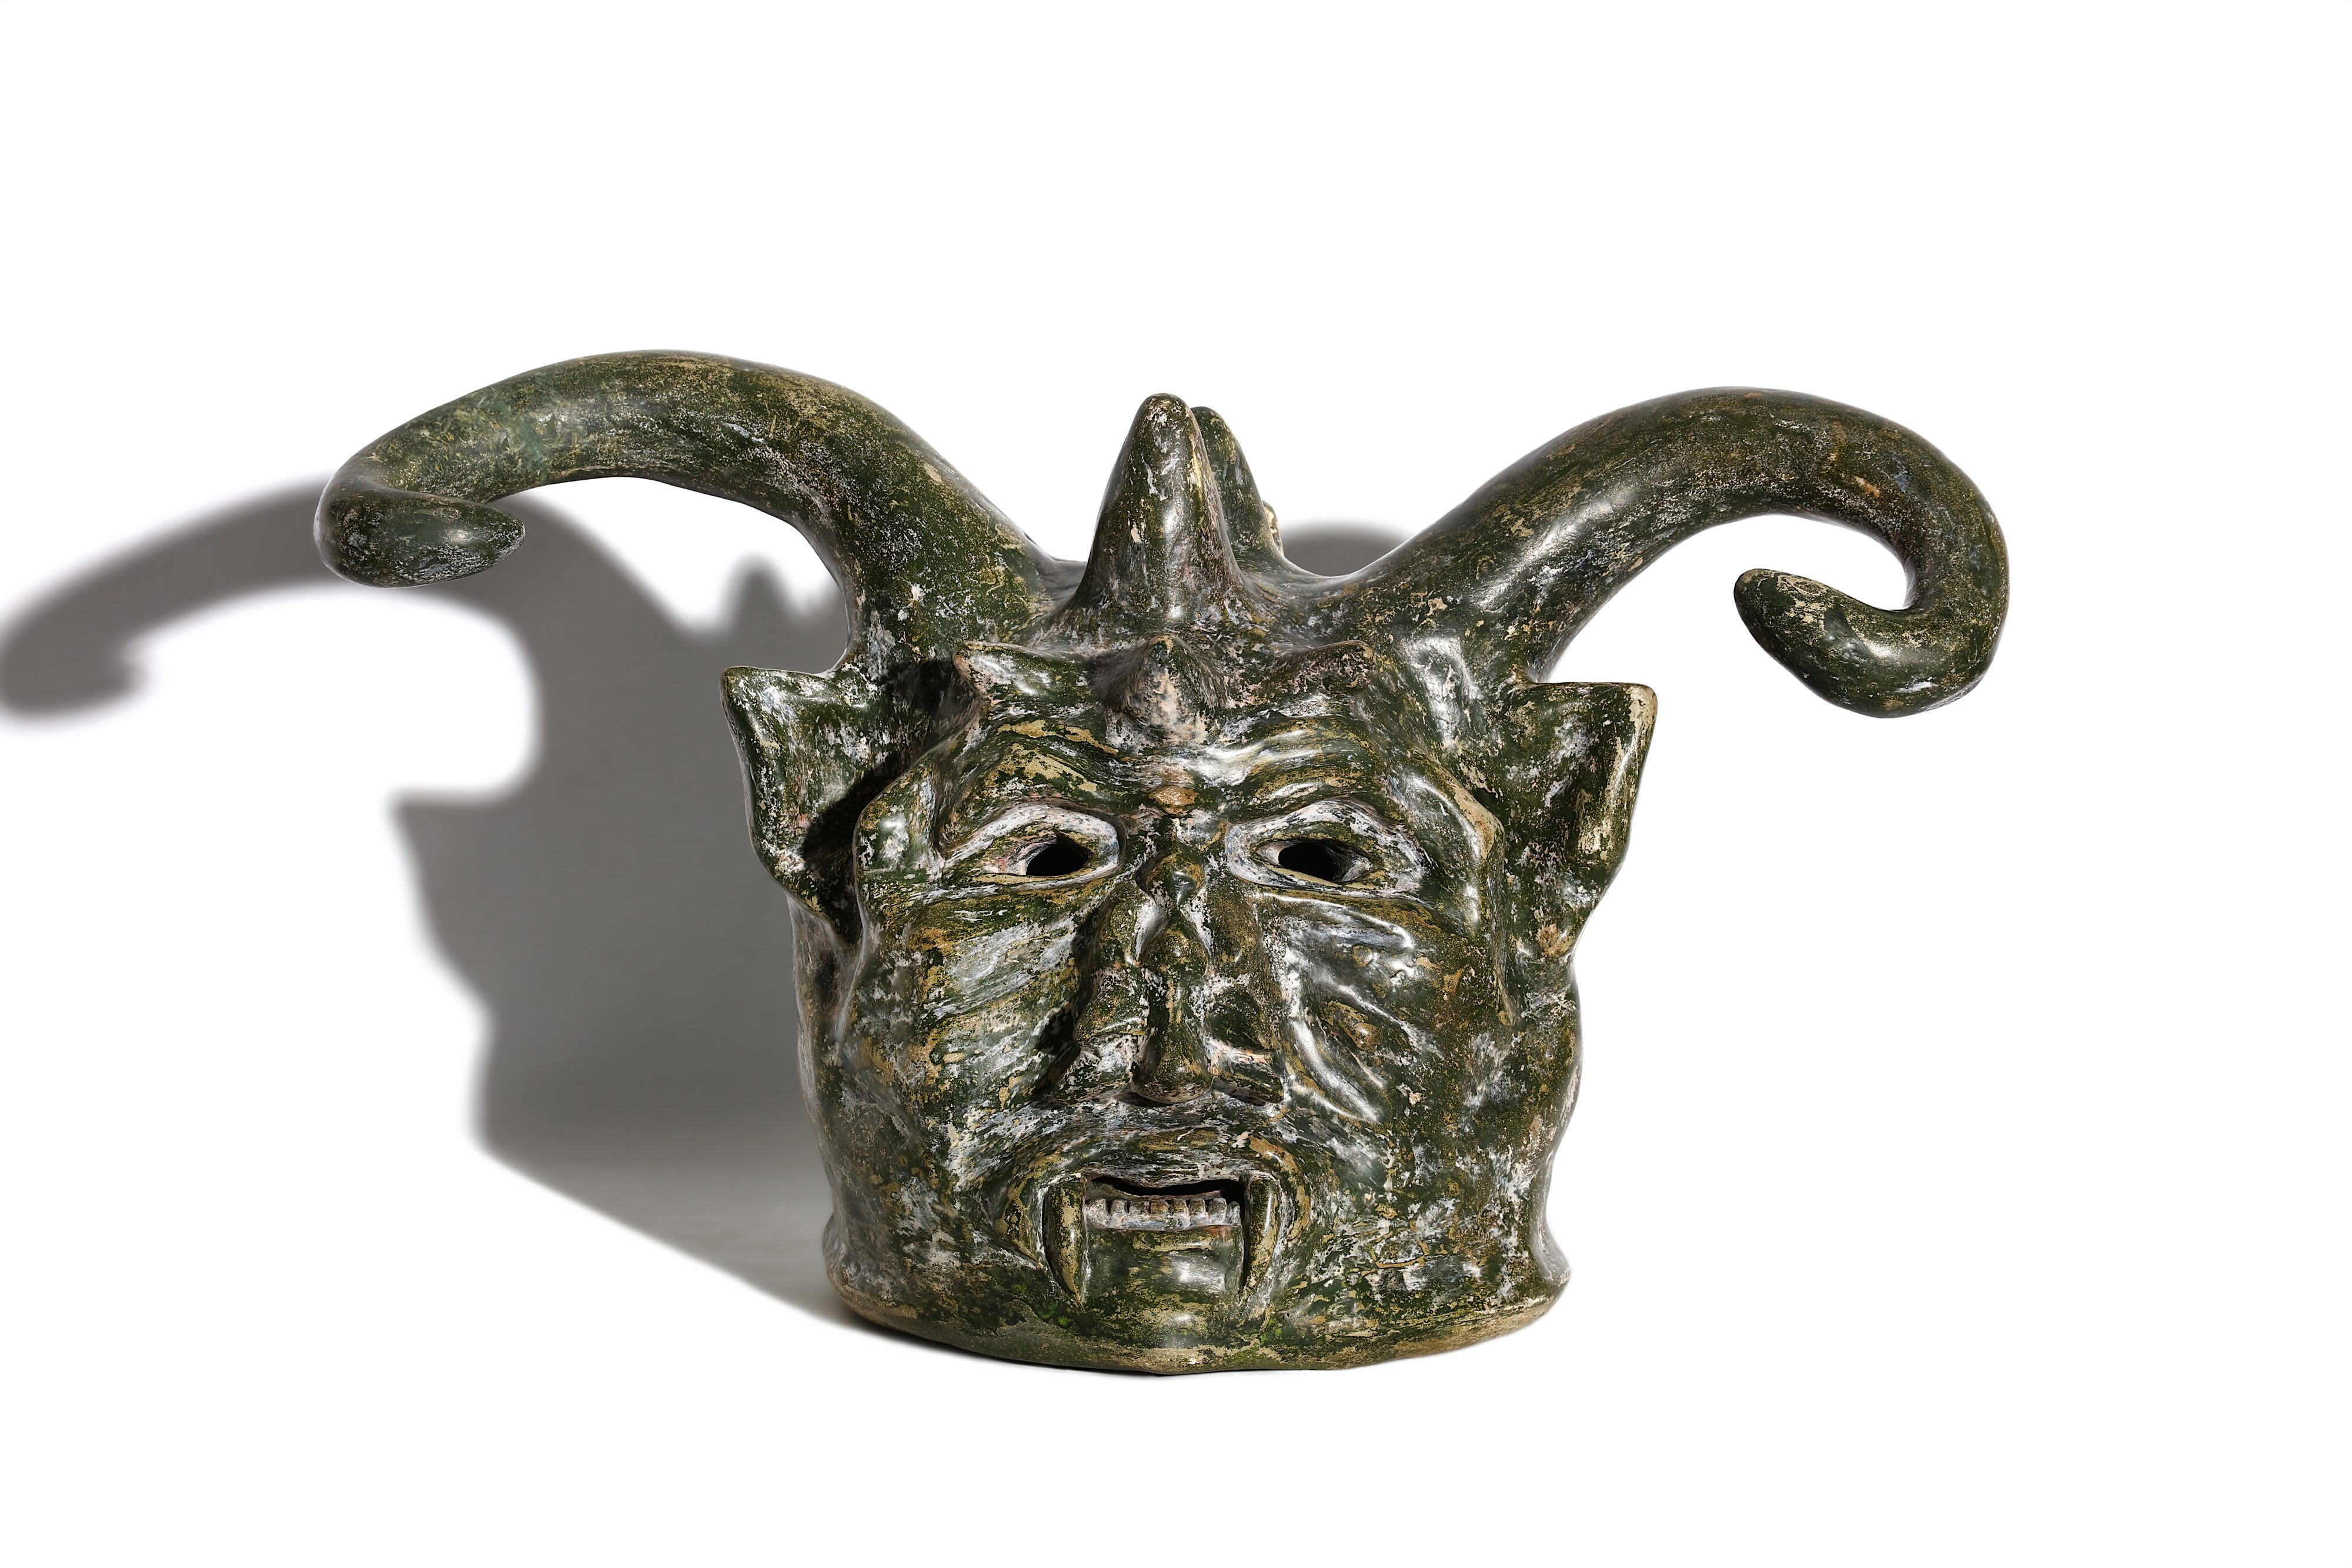 Lot 57 - A MYSTERIOUS AND LARGE 19TH CENTURY PAINTED TERRACOTTA HEAD OF A DEVIL, DATED 1873